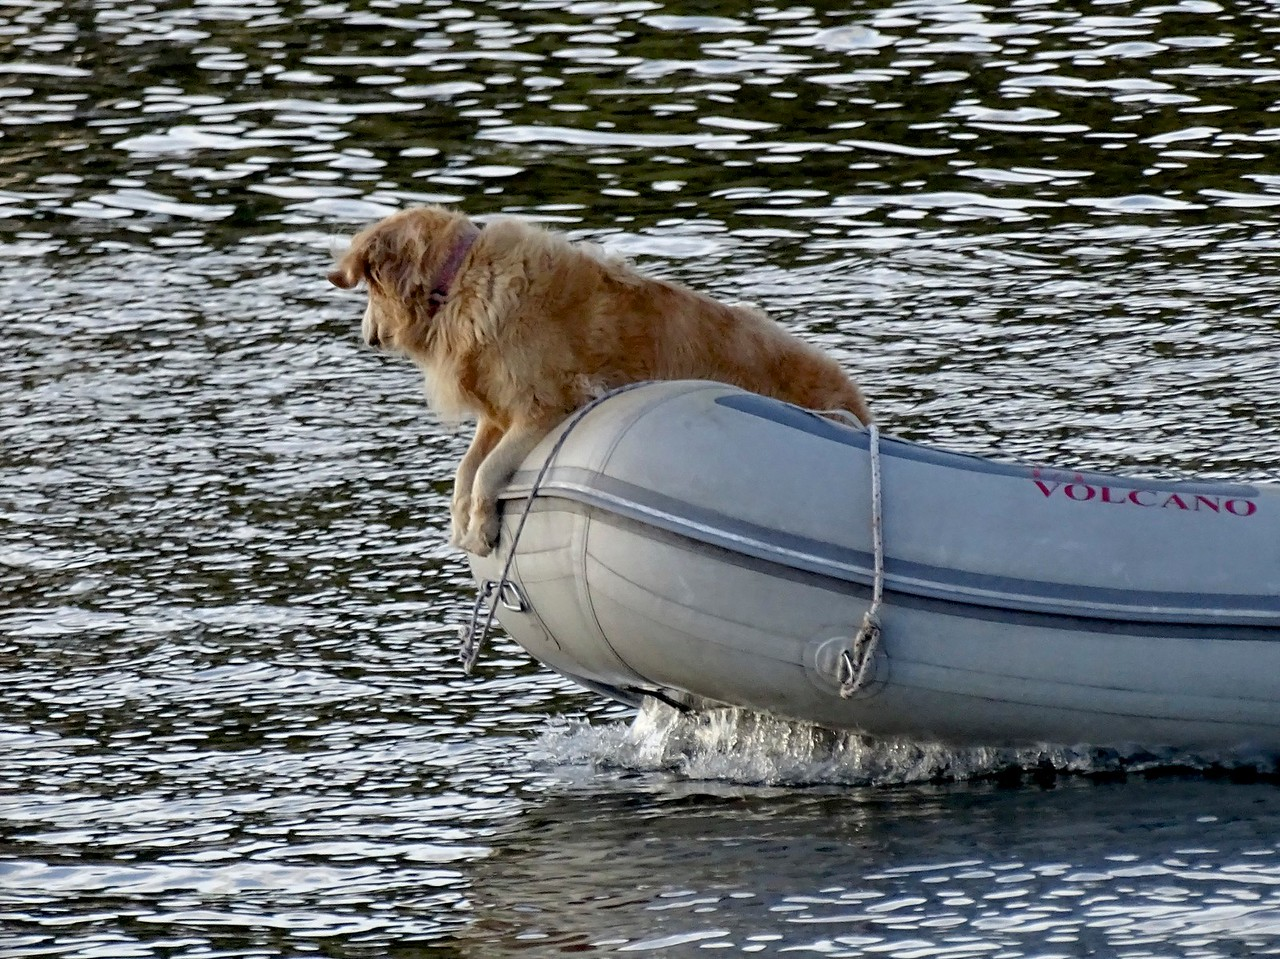 Watch dog- this was in the San Juan Islands last summer.